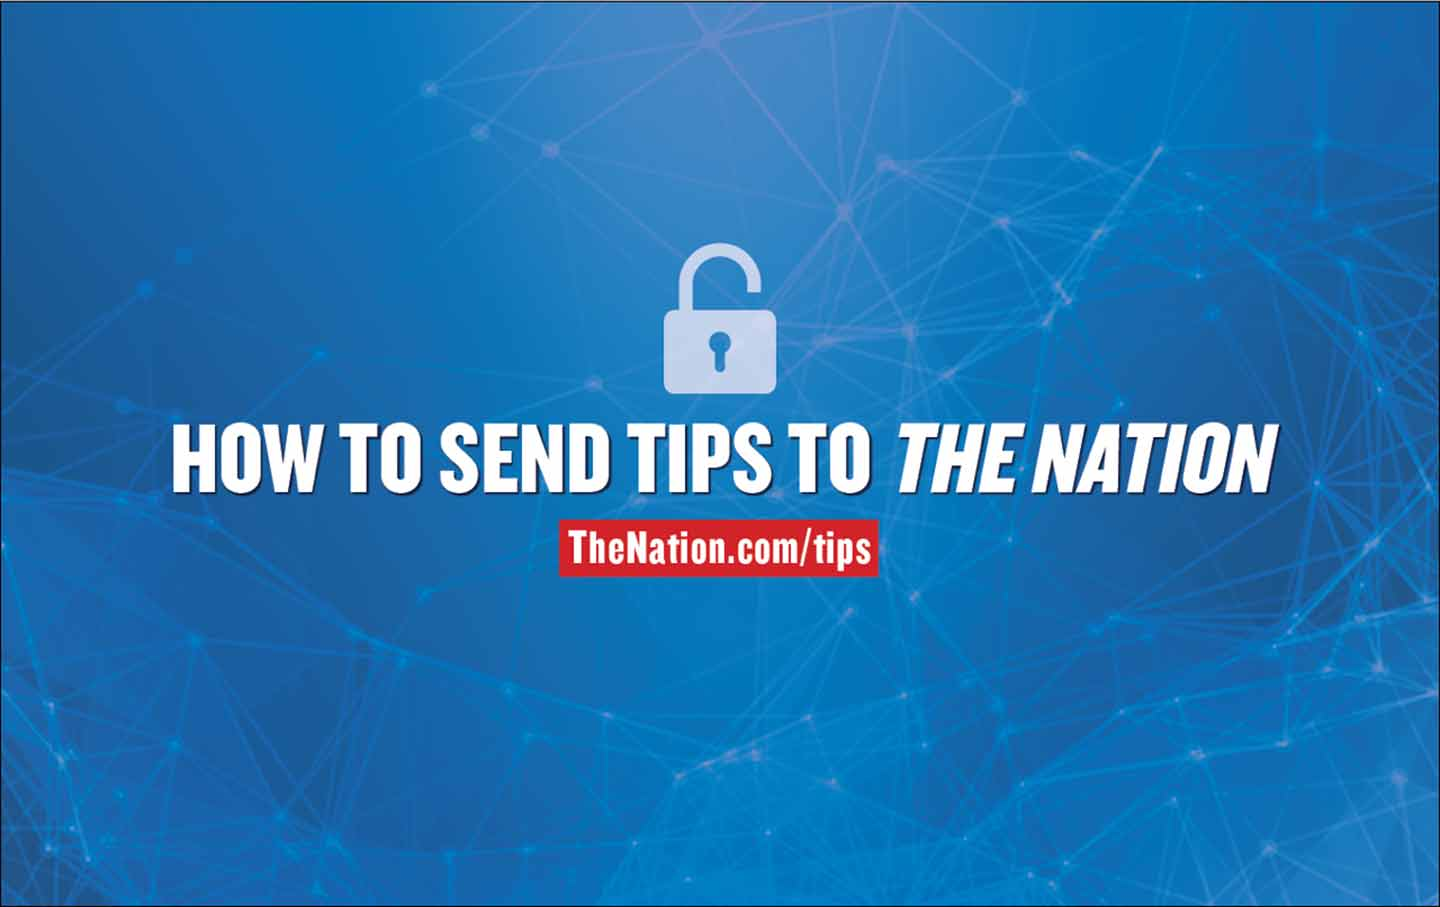 Send a tip to The Nation